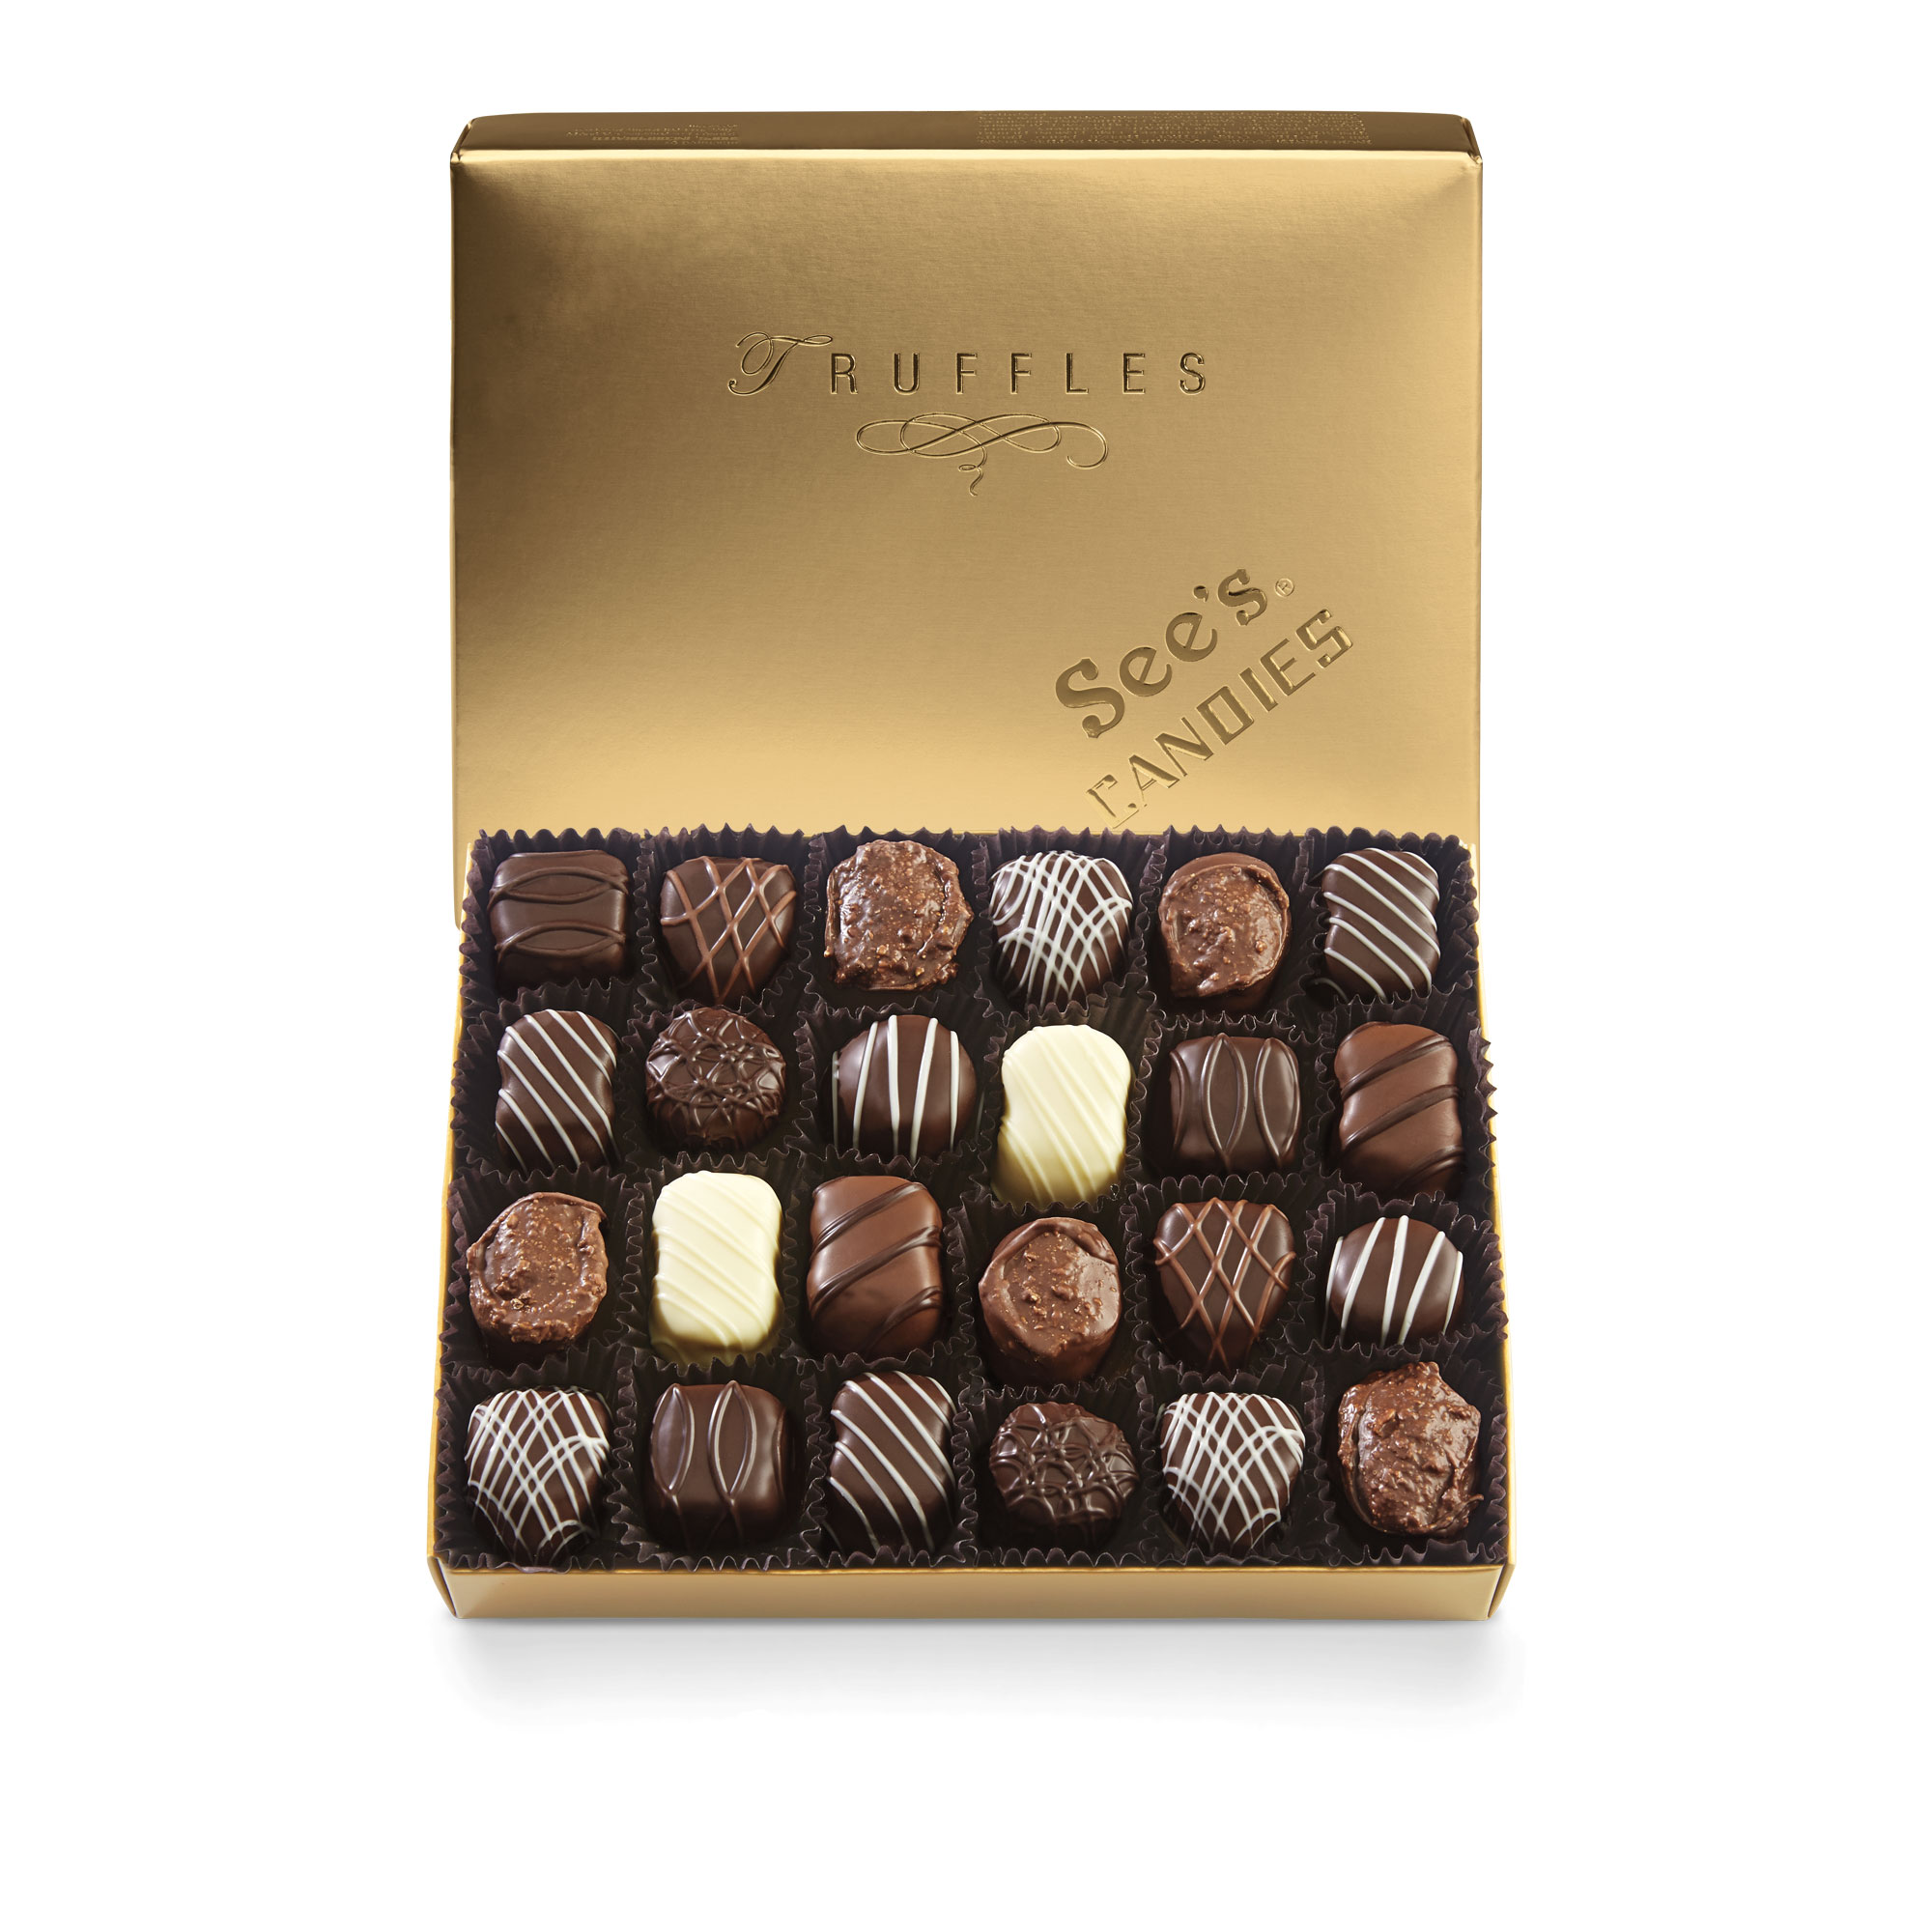 Truffles product view